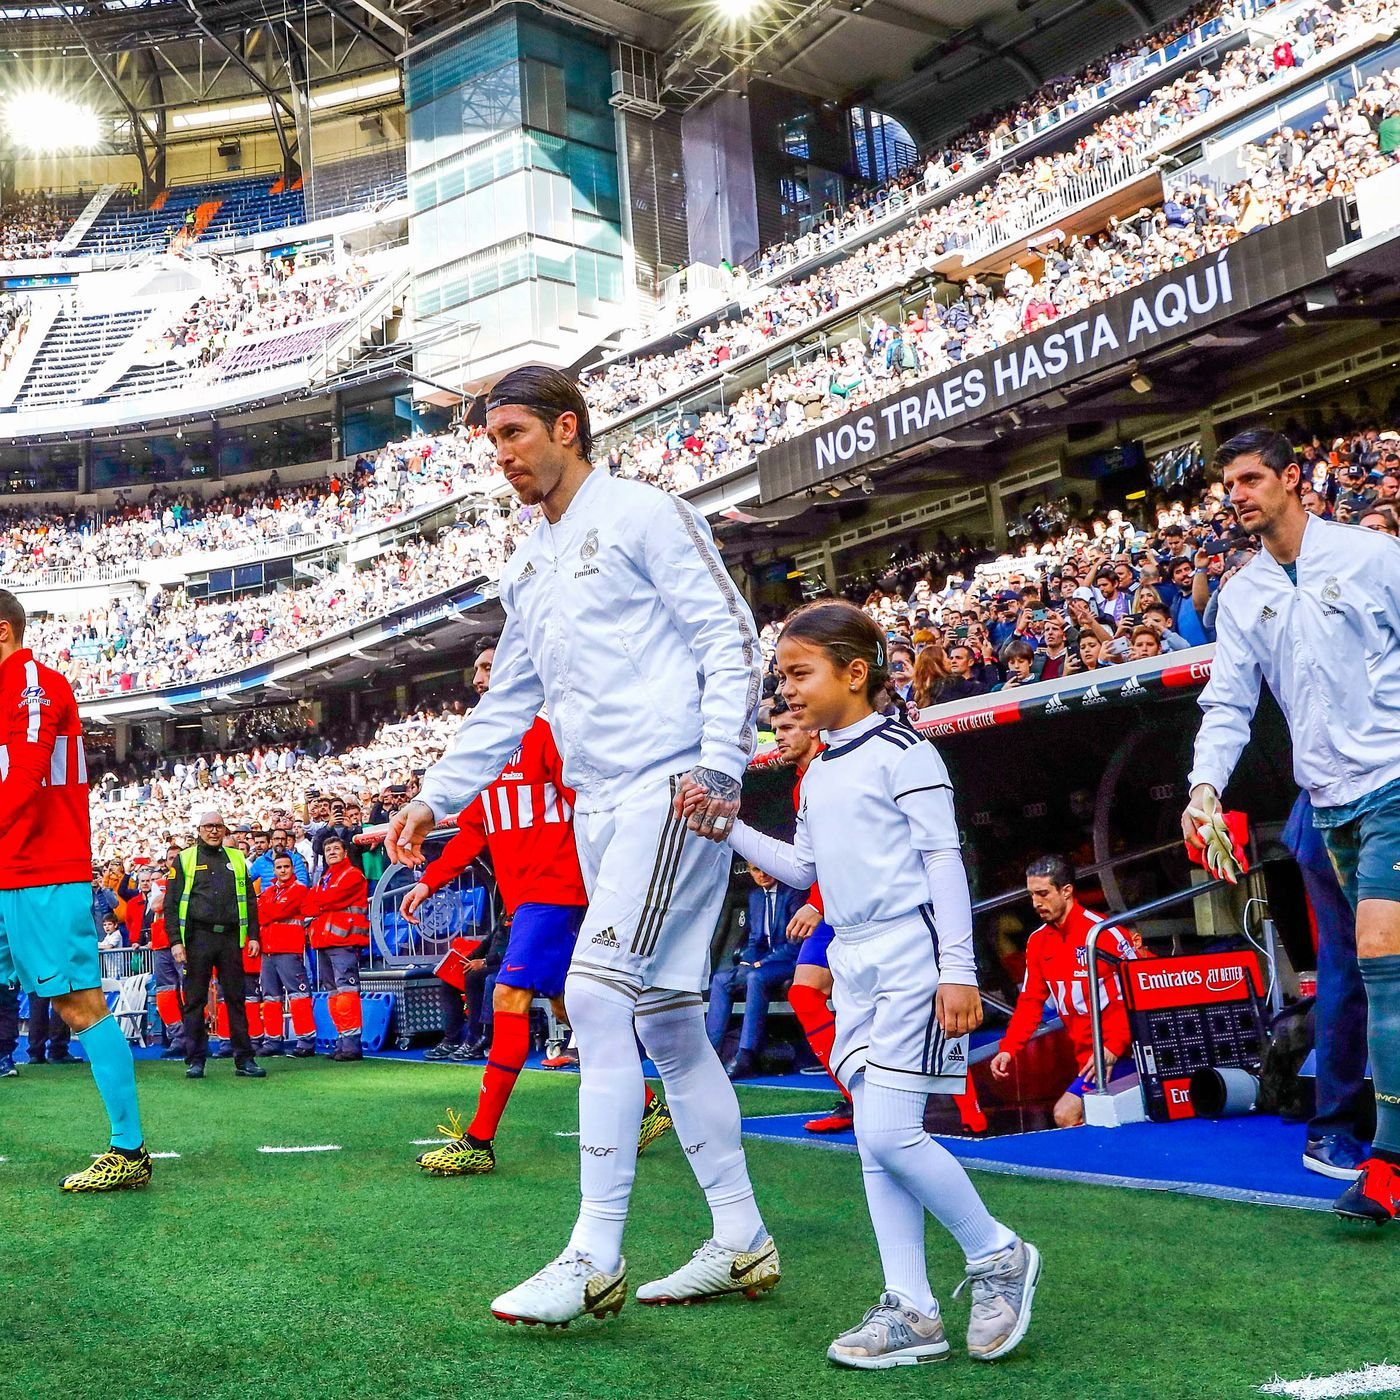 Real Madrid Atletico Madrid La Liga 2020 21 Match Preview Injuries Suspensions Potential Xis Prediction Managing Madrid